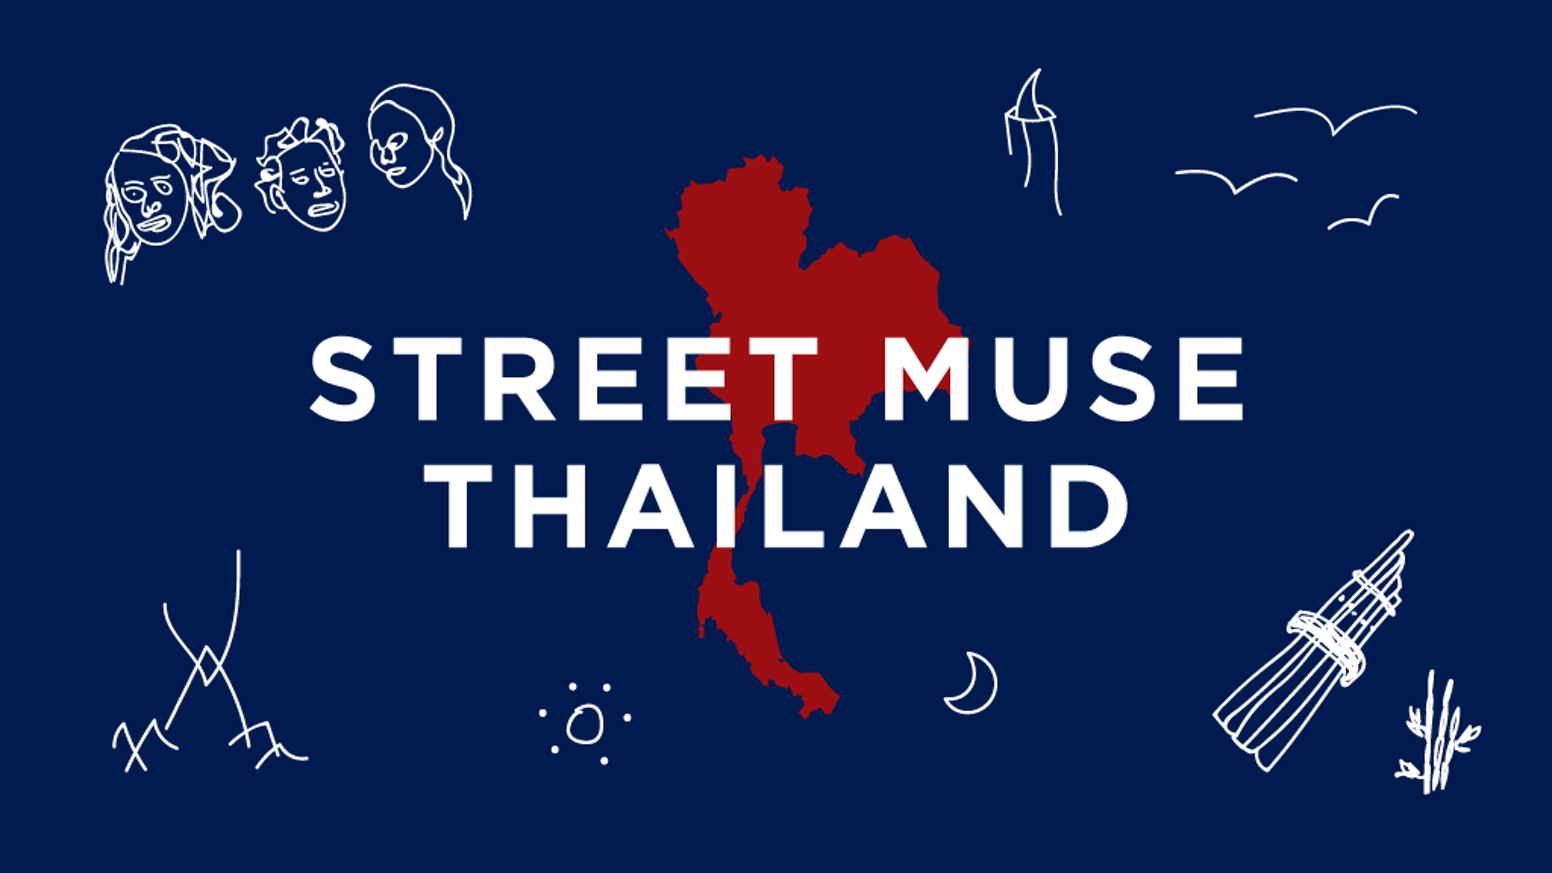 A new Street Muse documentary exploring musical ecology in Thailand with musician Gull.